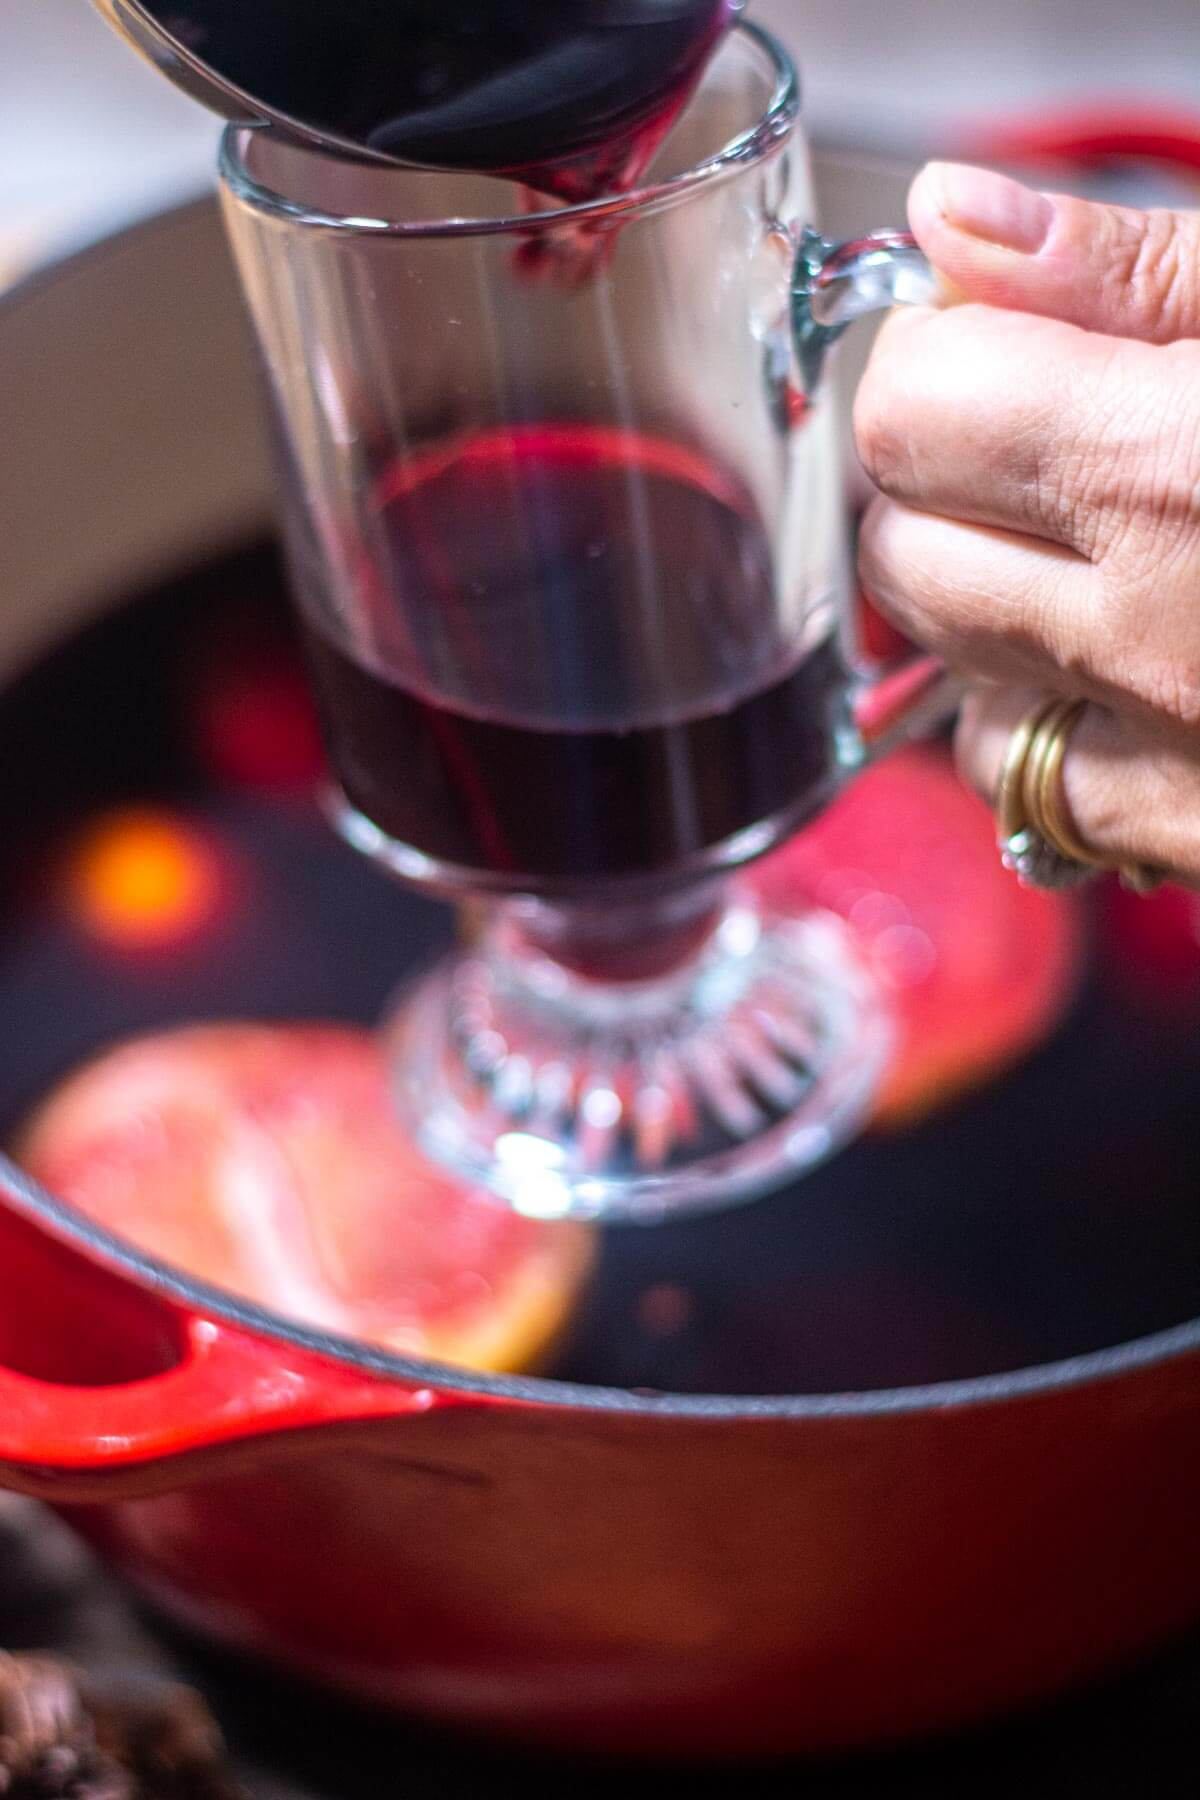 ladling the wine into a glass mug with the dutch oven in the bakground.